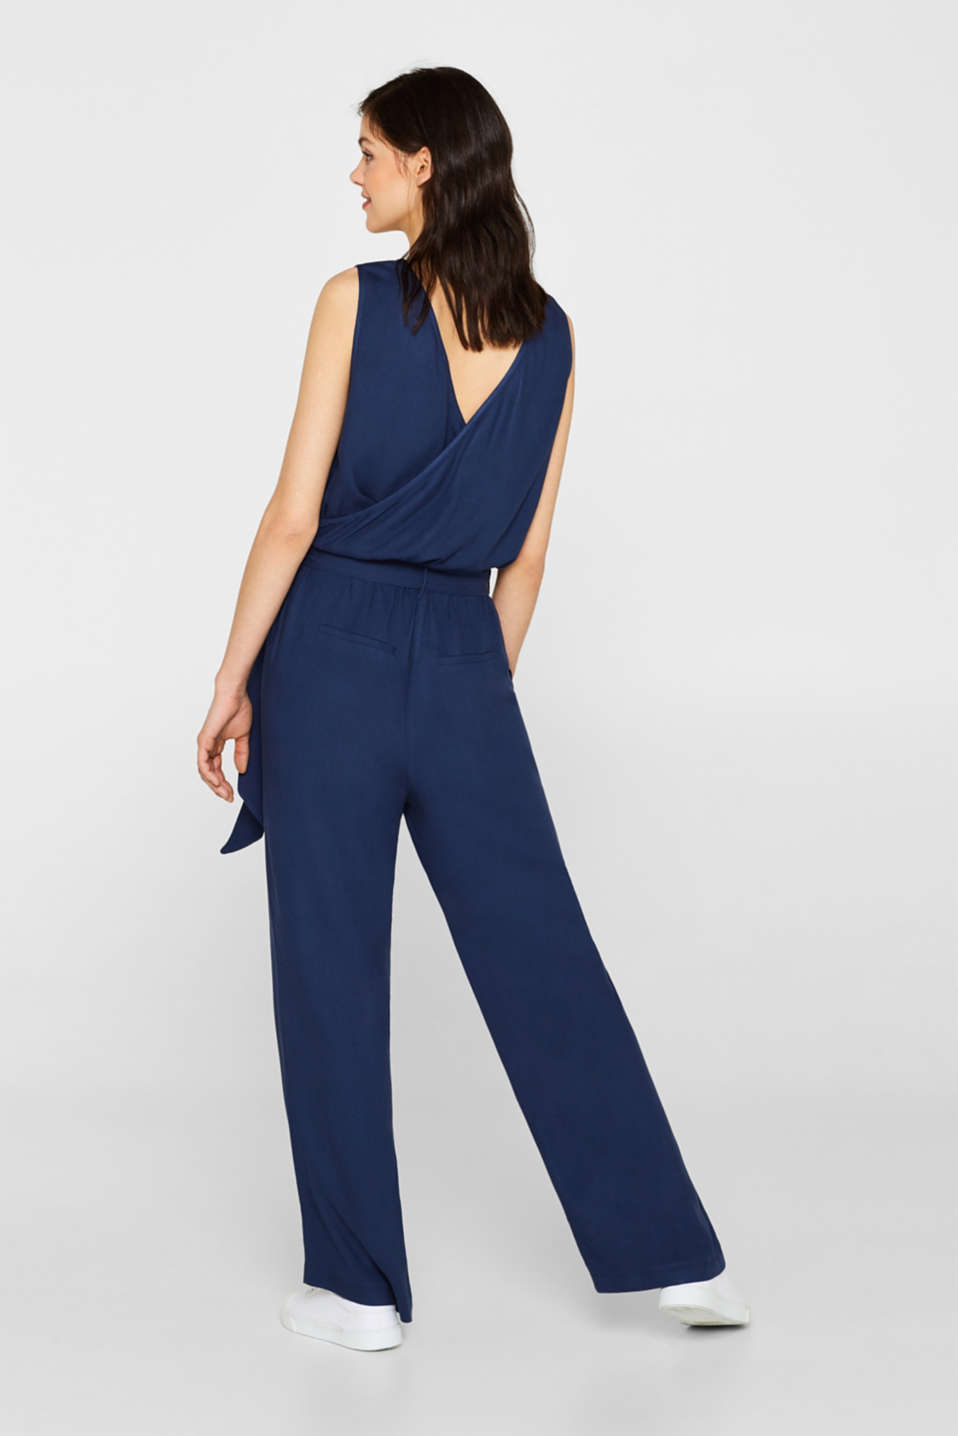 Jumpsuit with a wide leg and rear cut-out, NAVY, detail image number 3